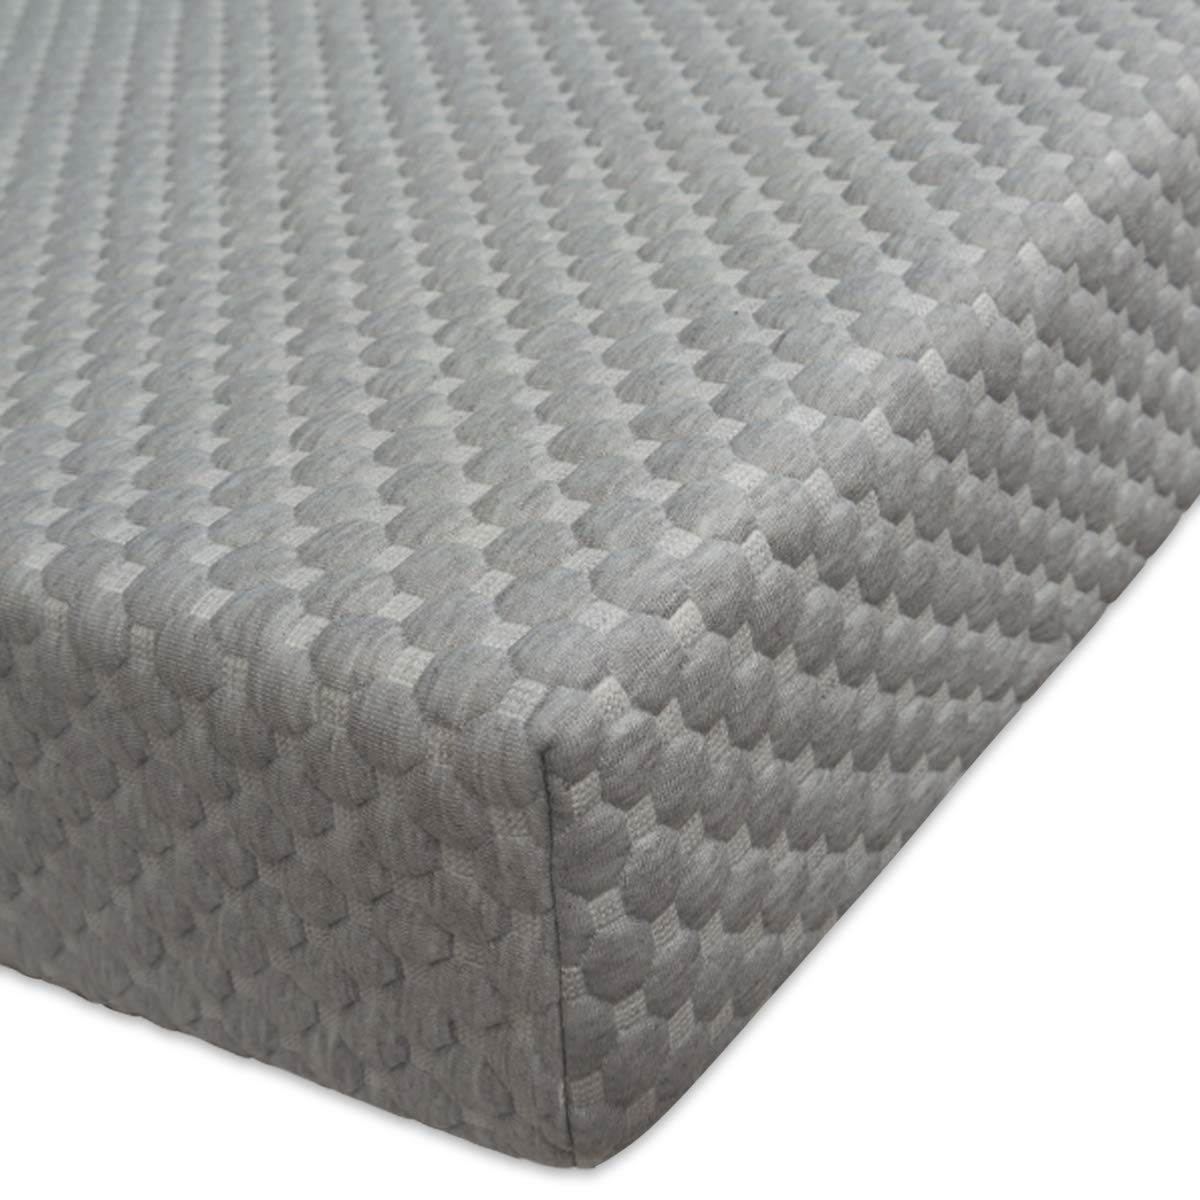 BlueSnail Bamboo Rayon Quilted Pack N Play Crib Mattress Cover - Fits Baby Portable Mini Cribs, Play Yards and Foldable Mattresses (Gray)